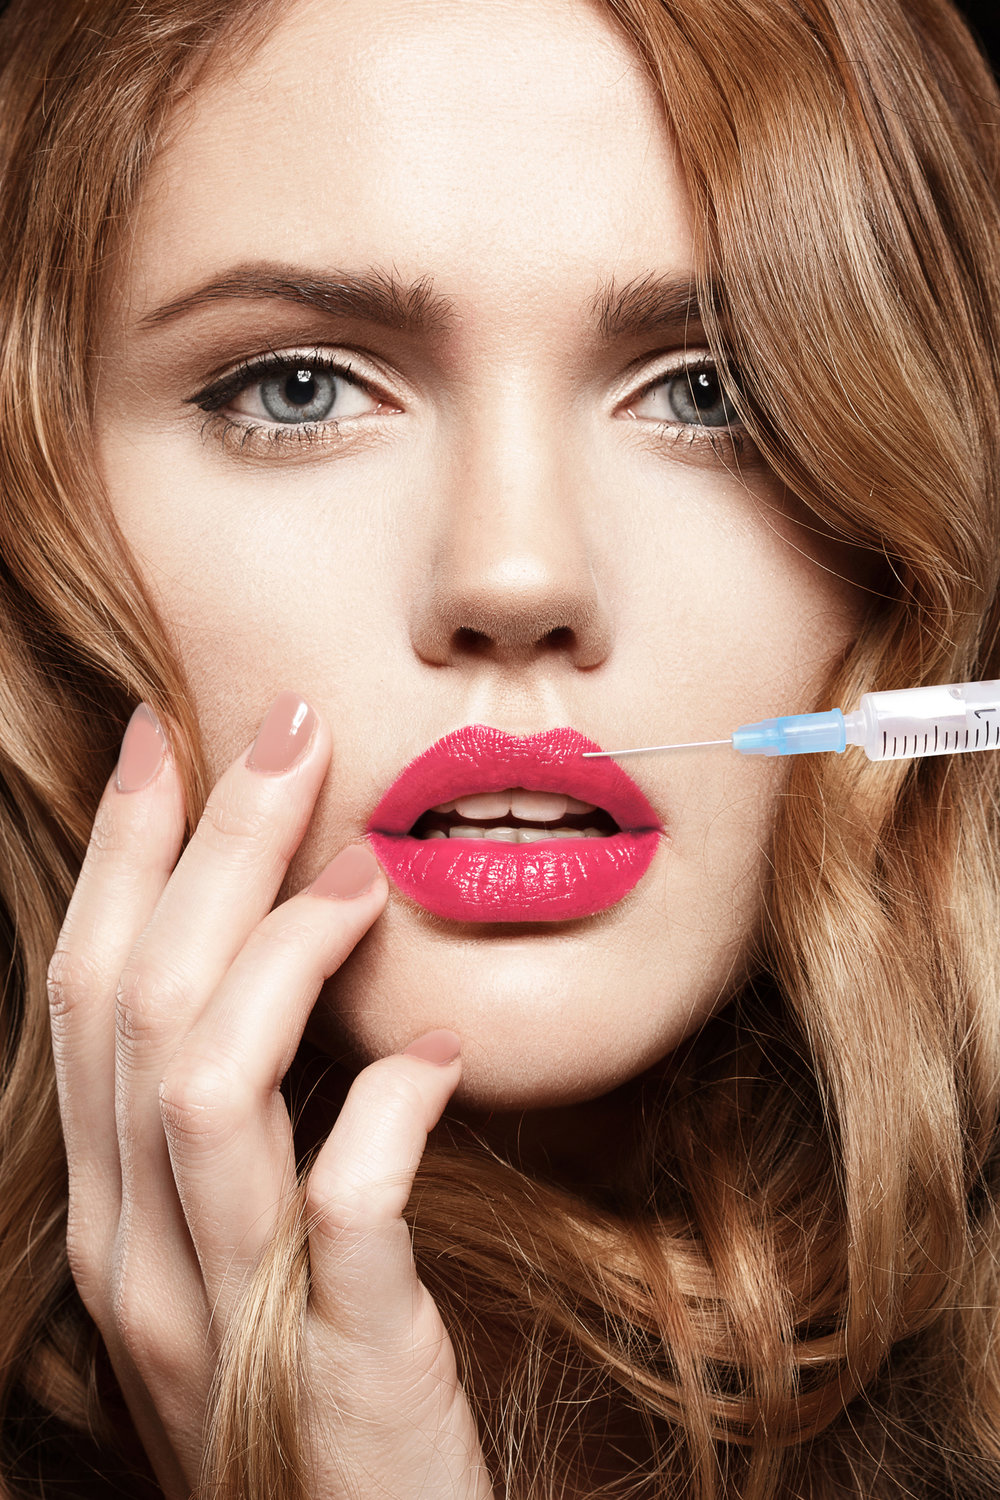 ComplimentsLip Fillers - LipAddict® is also a great product to compliment lip injections/ fillers.The product will enhance and maintain the effects of the procedure, leaving your customers loving their lips even more!The product can be applied immediately after the procedure. Doctors are finishing off lip injections procedure with LipAddict®!Click here to carry LipAddict in your practice!